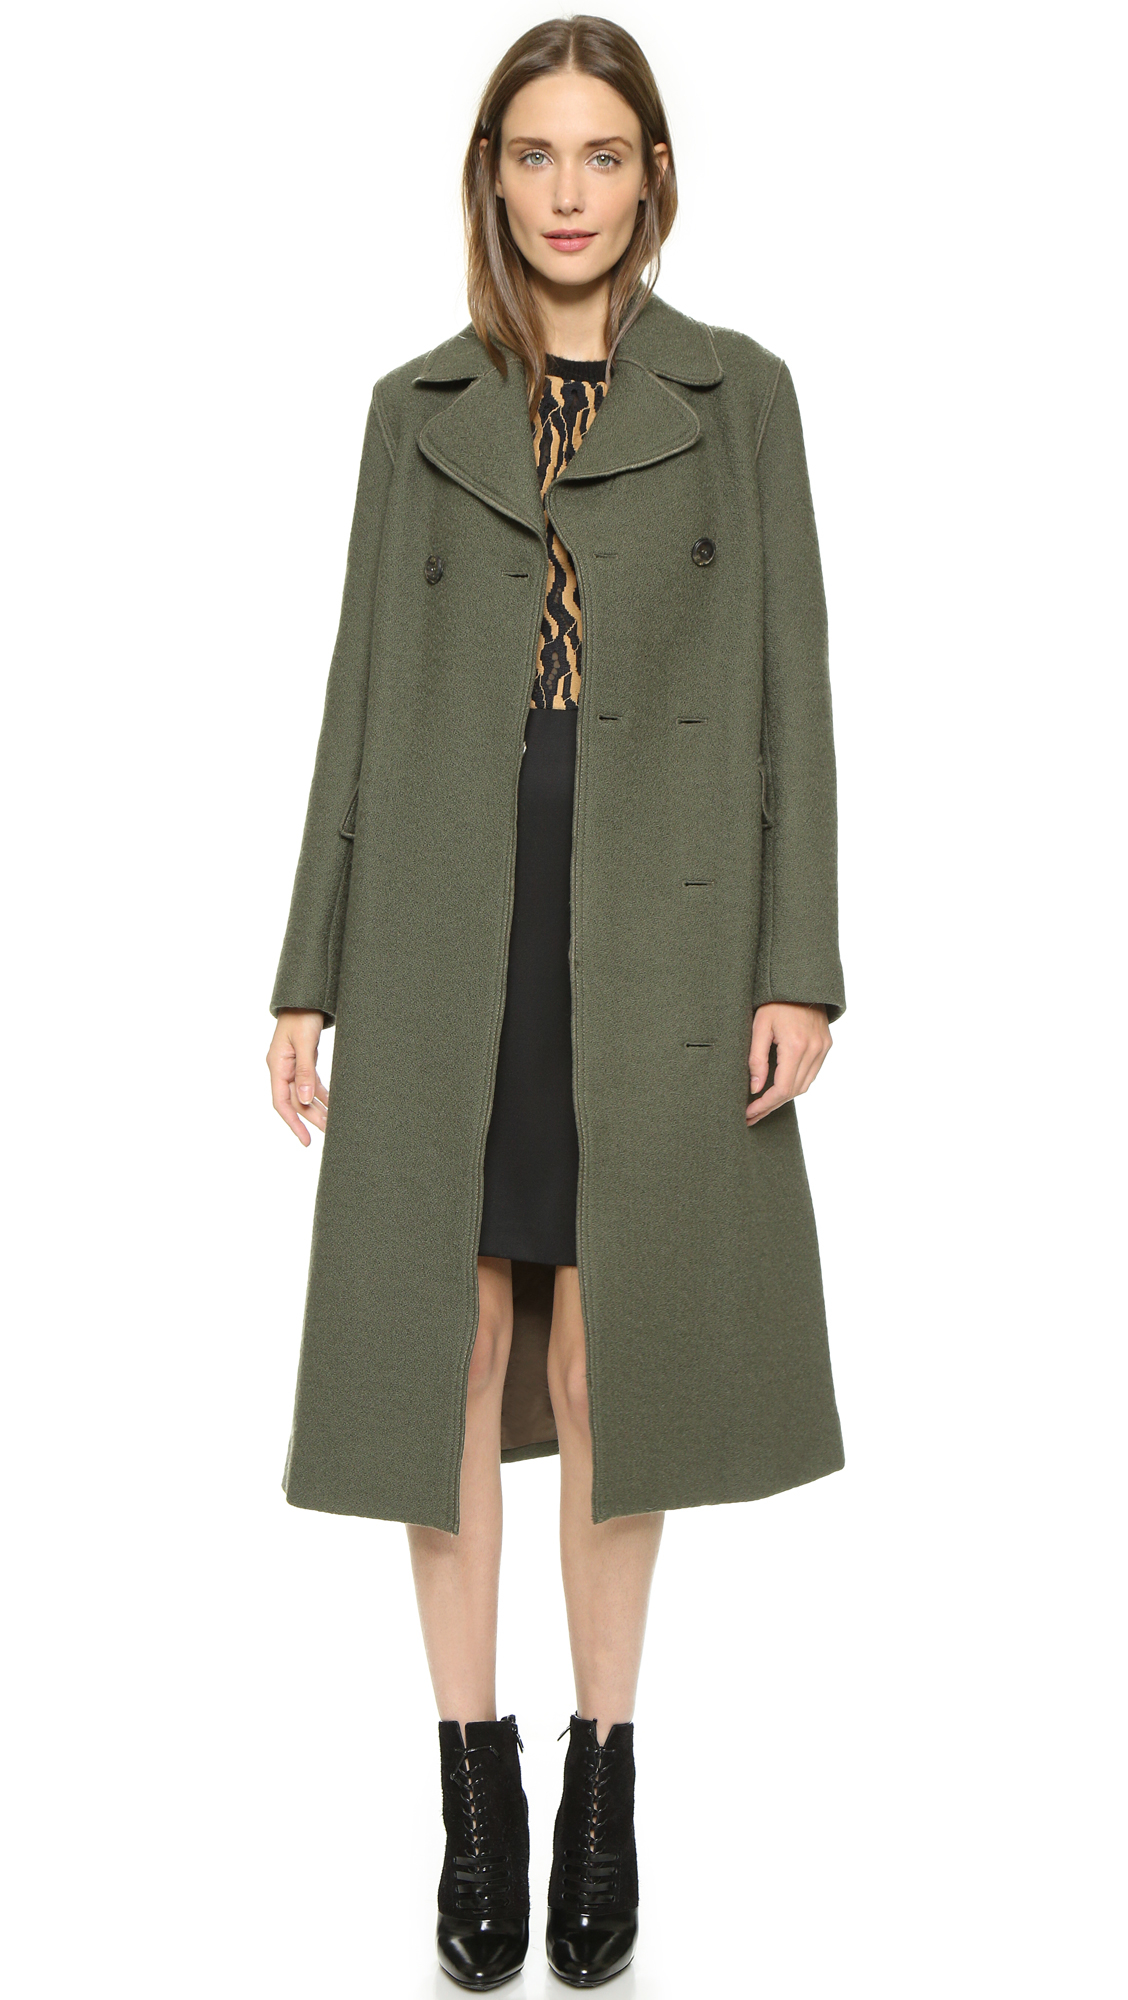 3.1 phillip lim Long Two Button Car Coat - Army in Green | Lyst